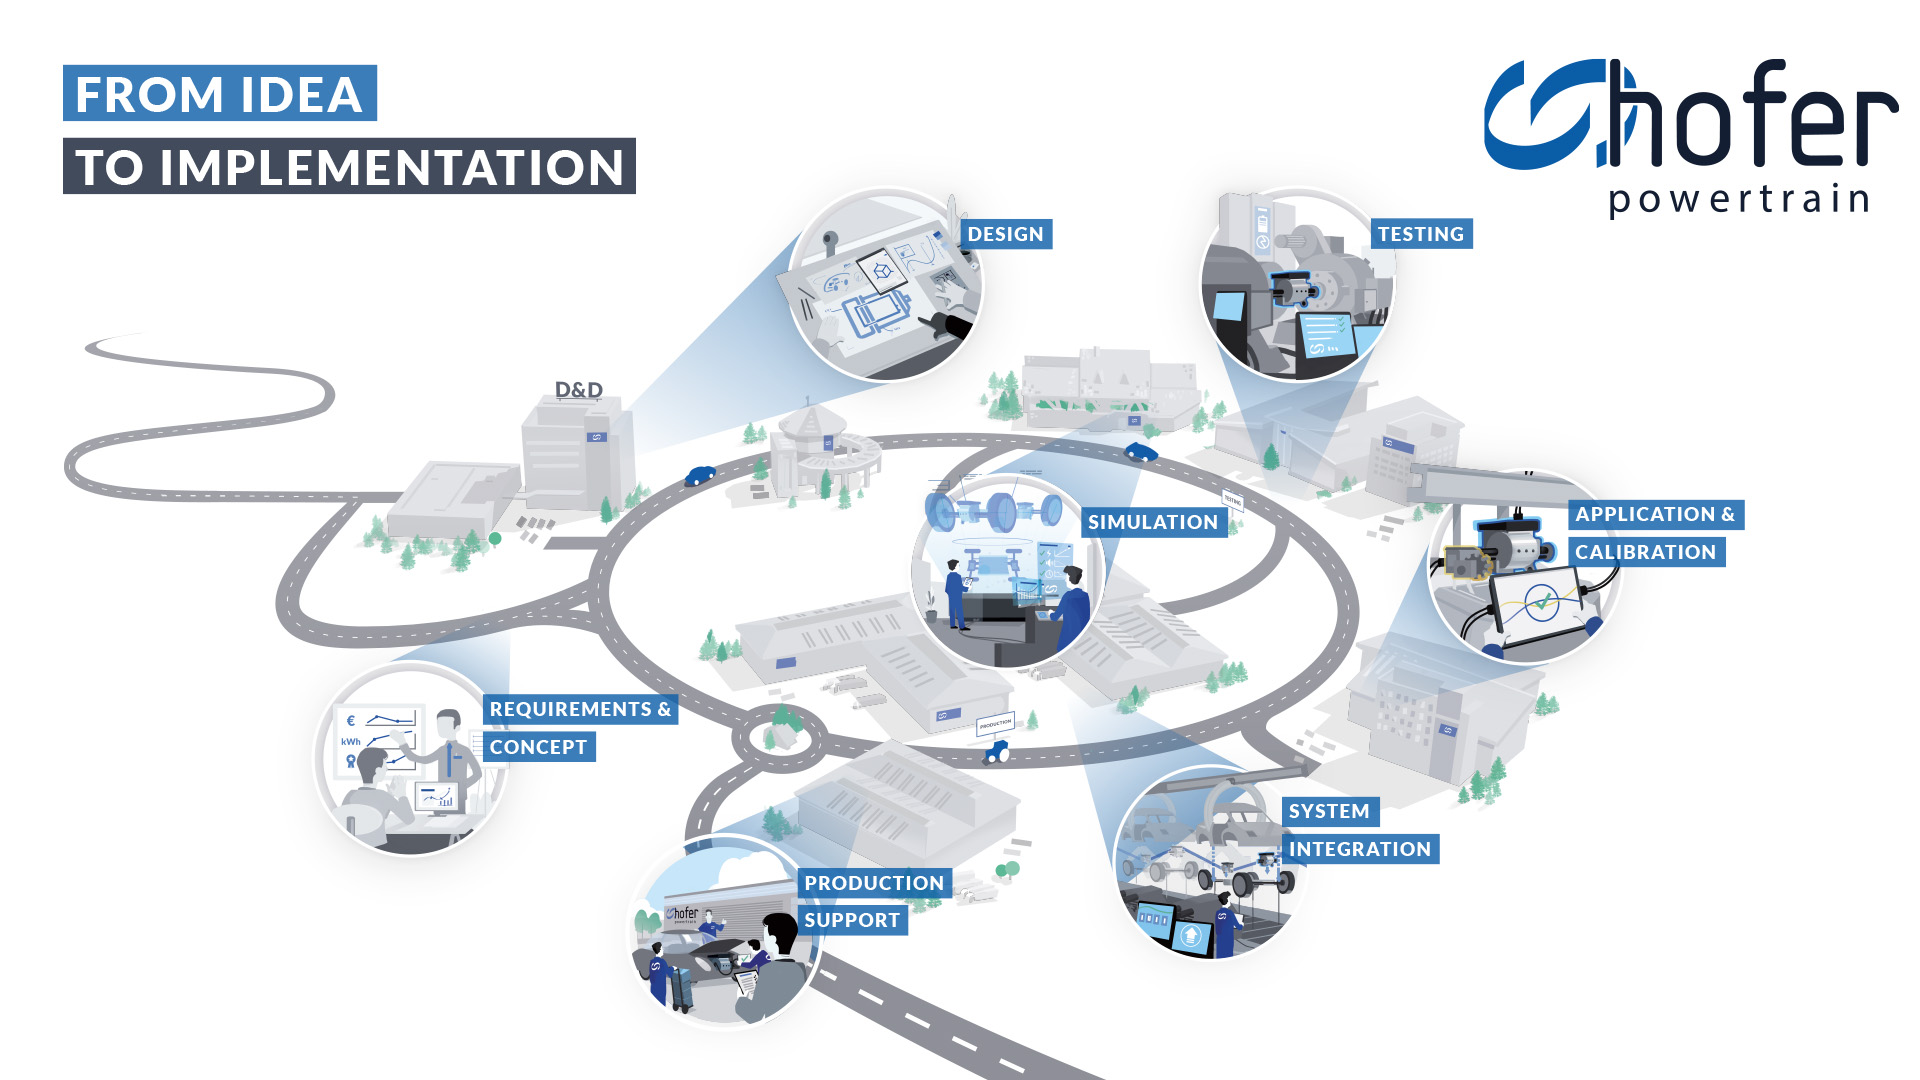 hofer powertrain from concept to production illustration